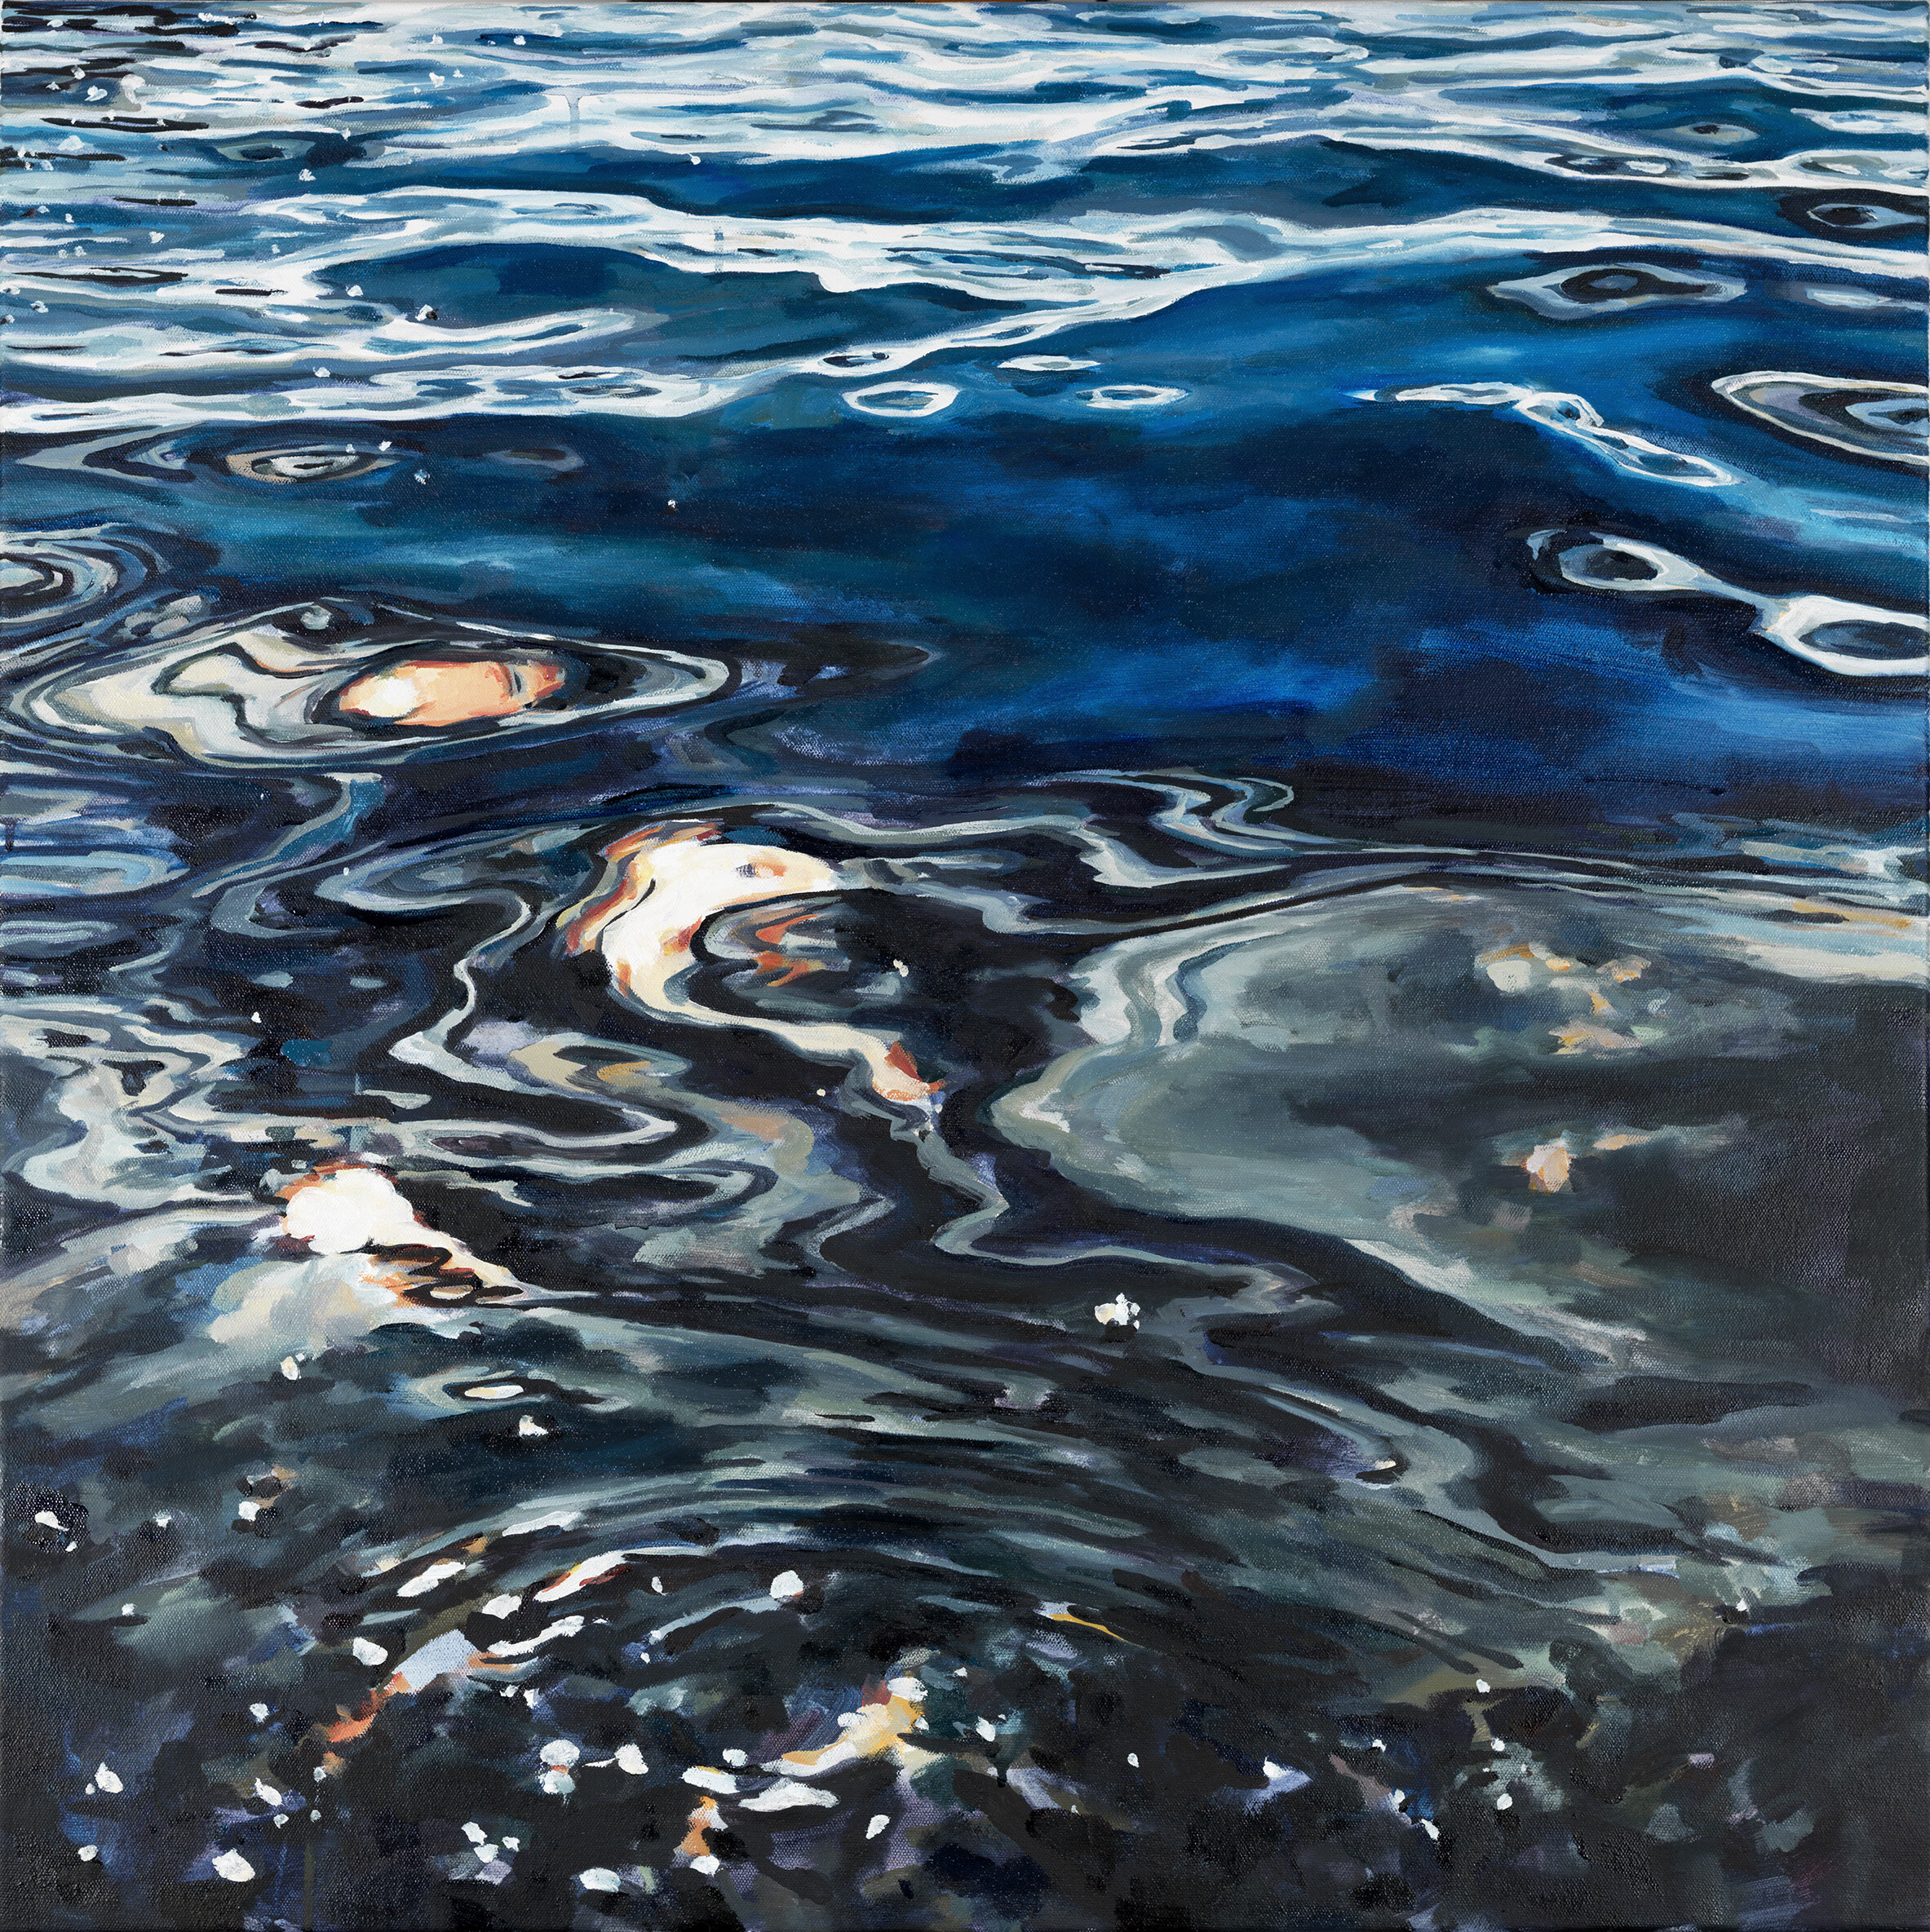 """'Silver Sea'  2017  30"""" x 30""""  water soluble oil on canvas  sold"""